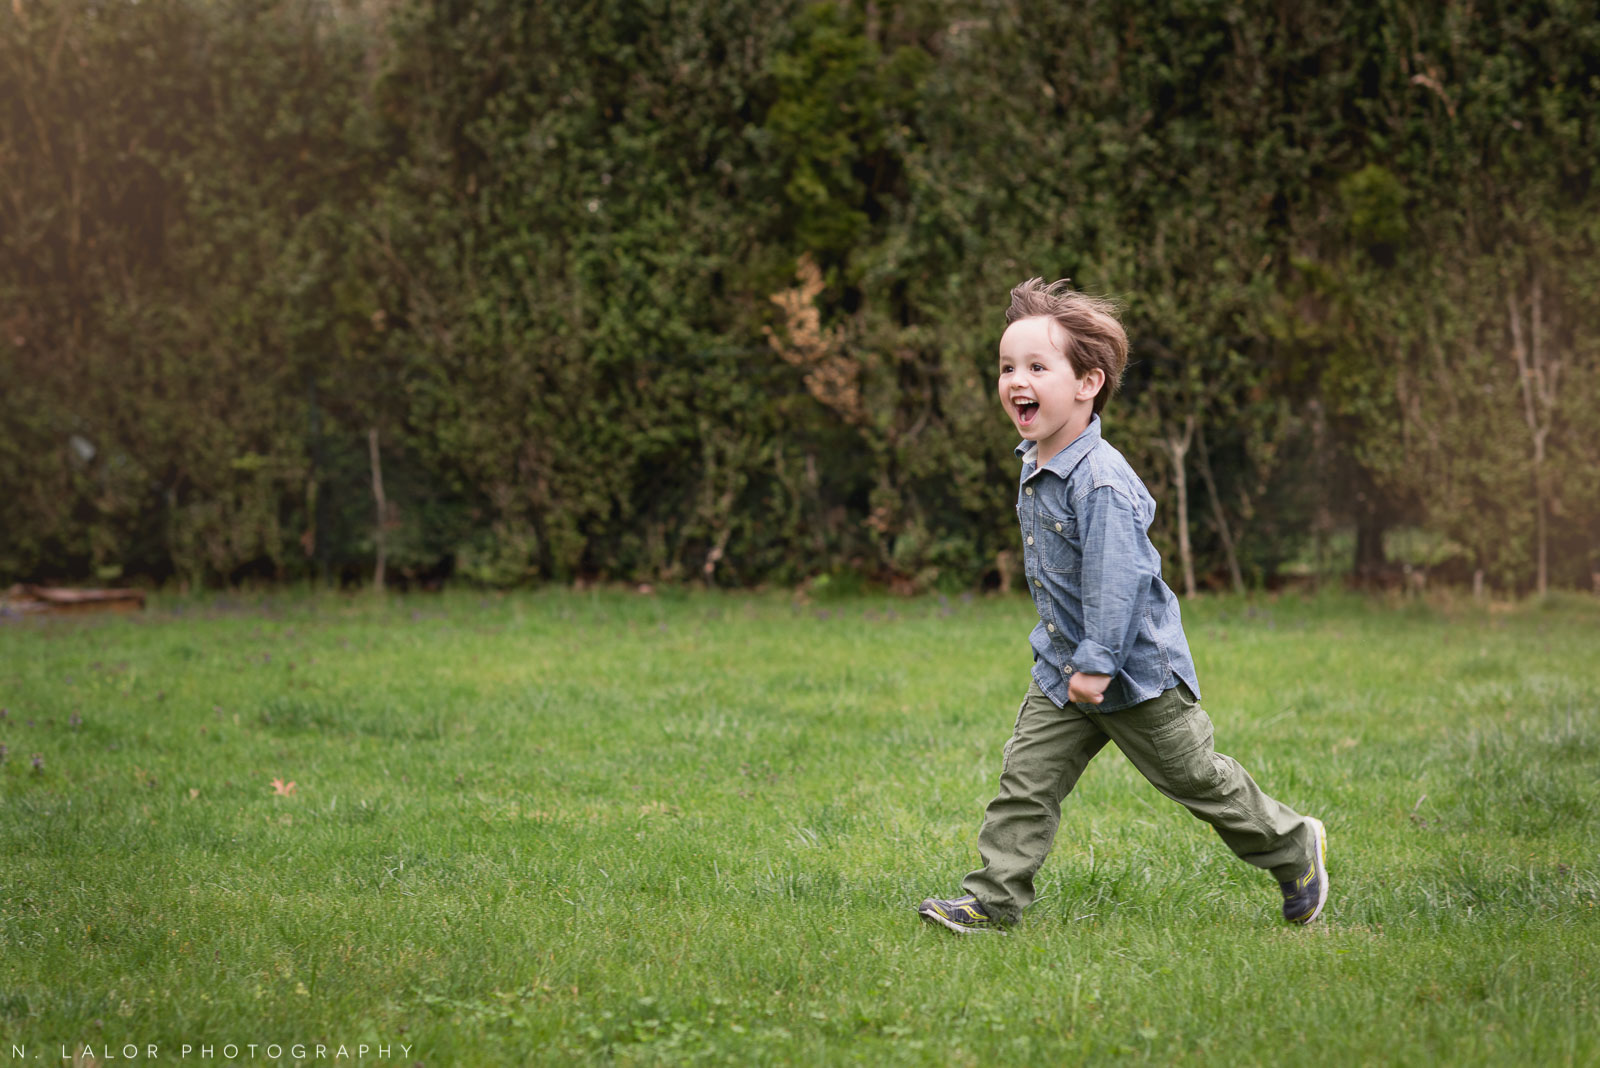 Running in the back yard. Lifestyle family session with N. Lalor Photography.